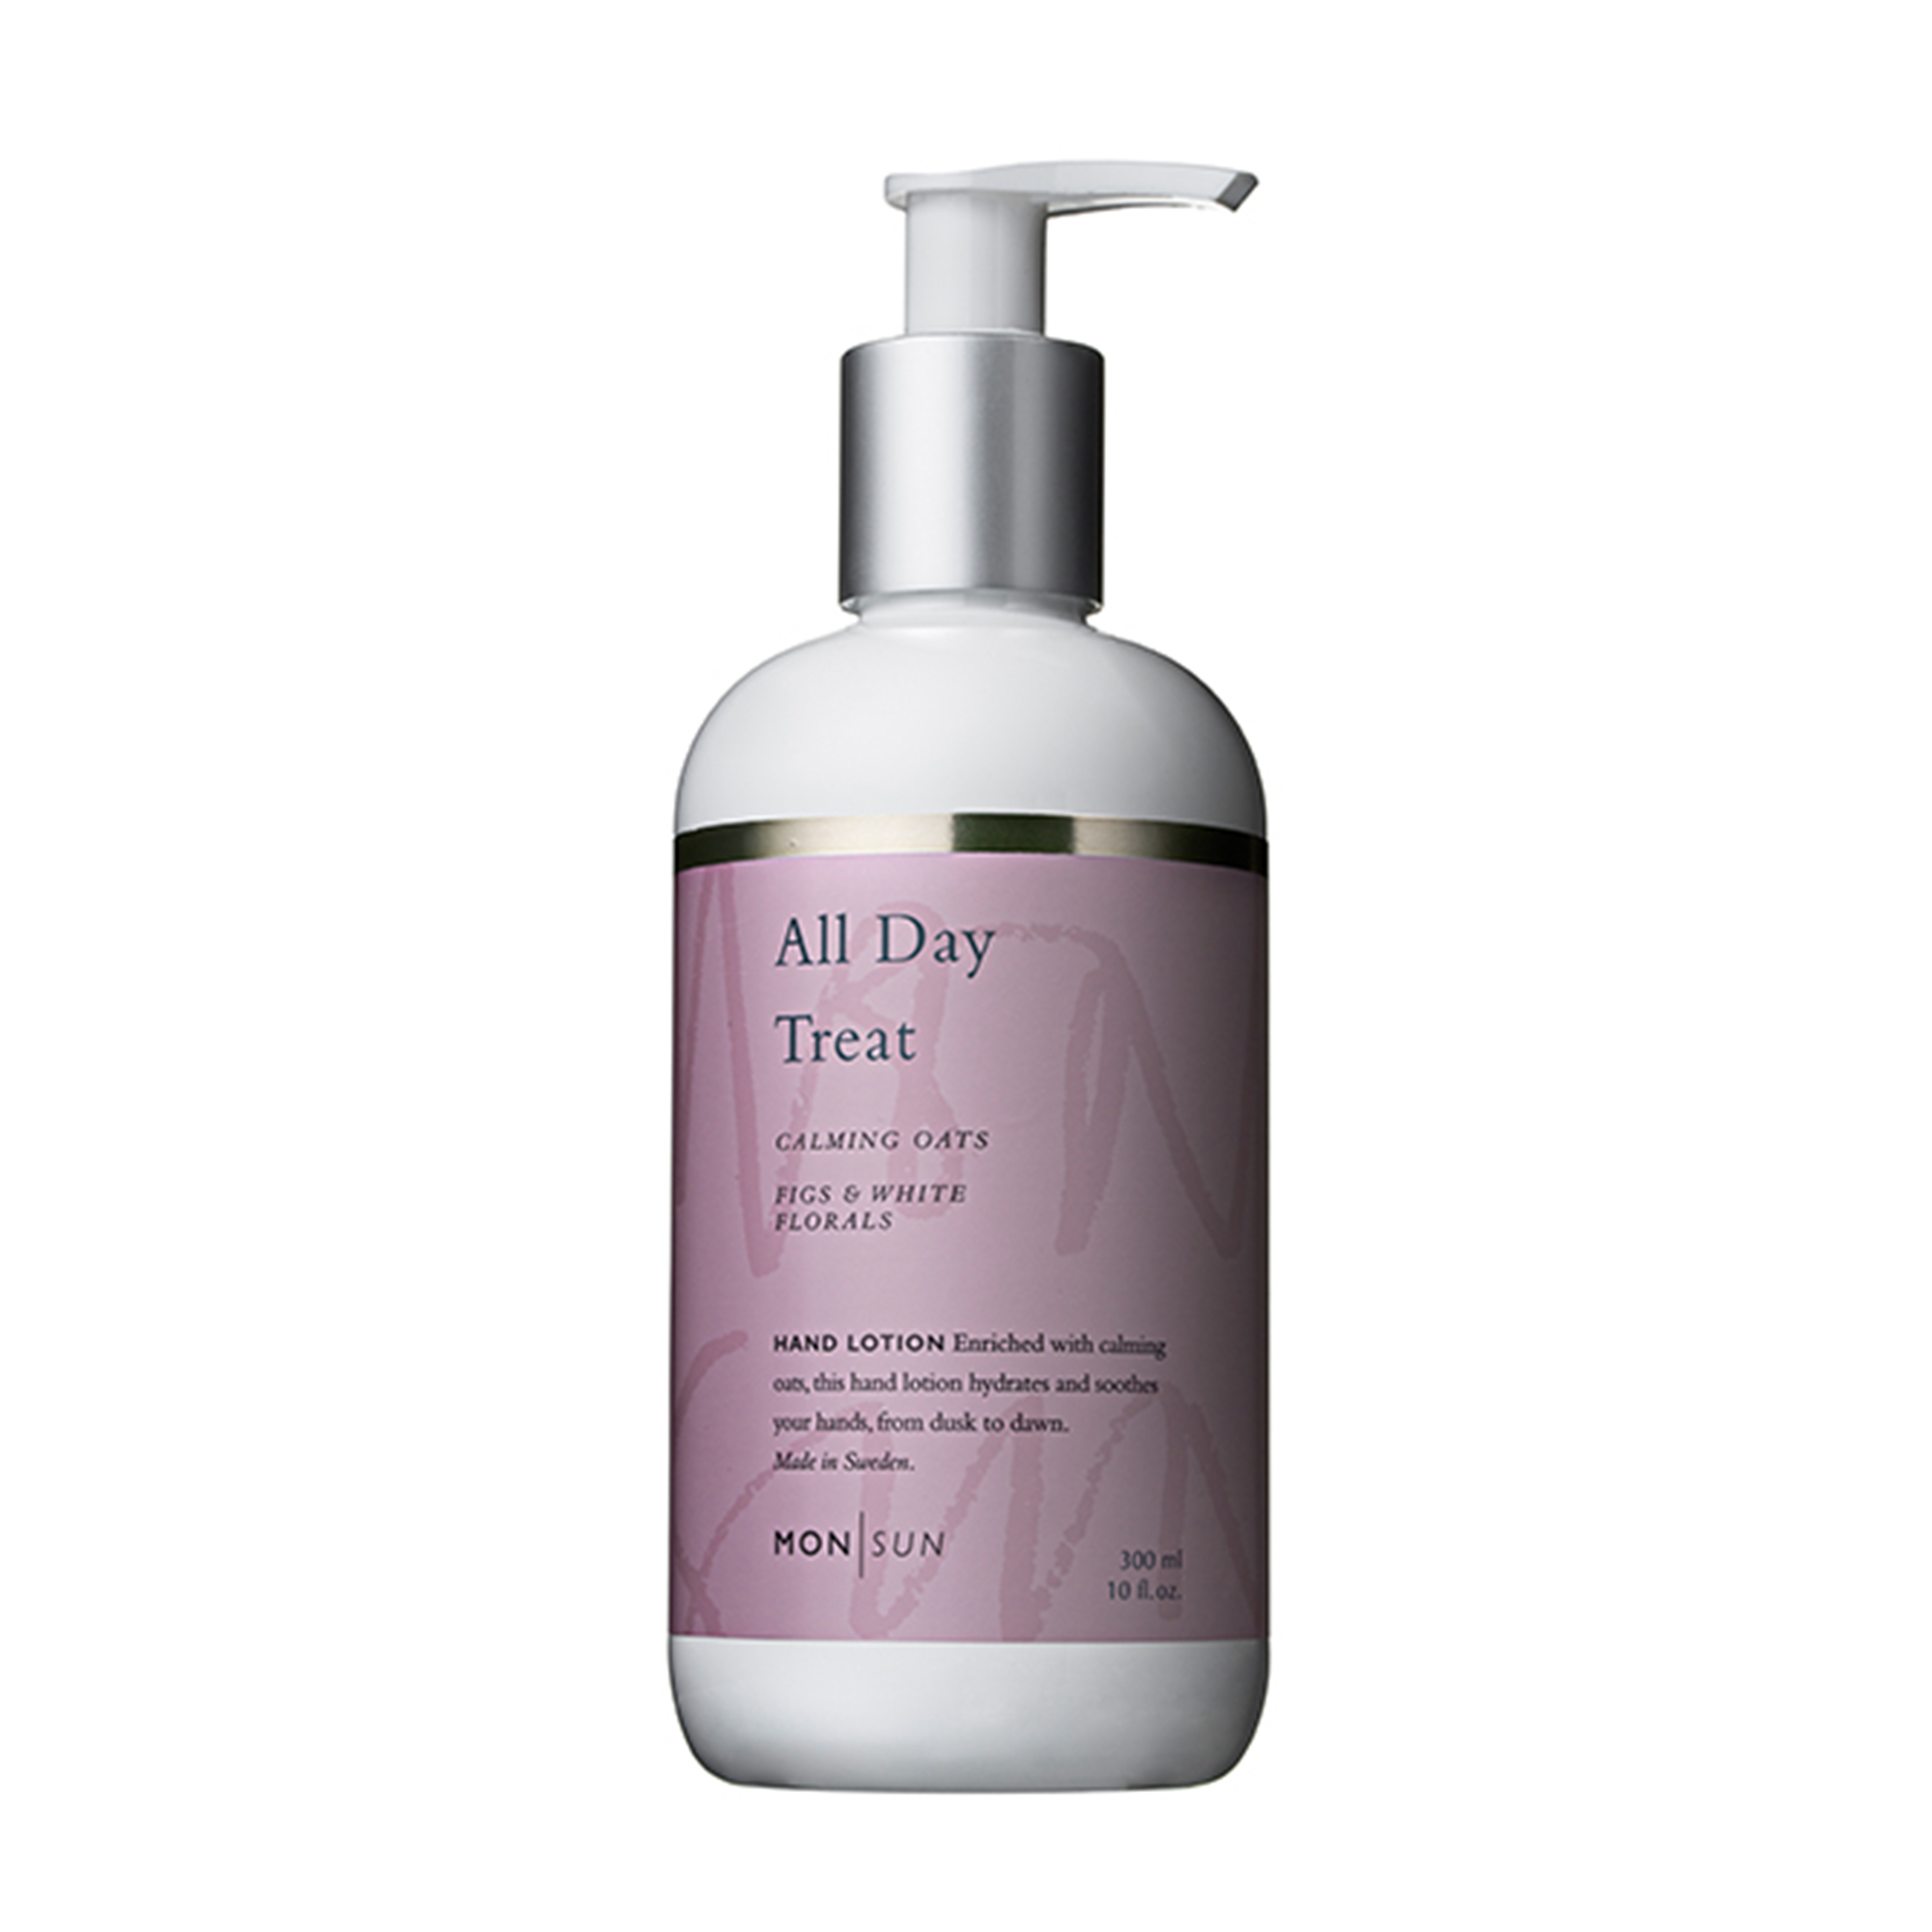 All Day Treat Calming Oats Hand Lotion 300 ml